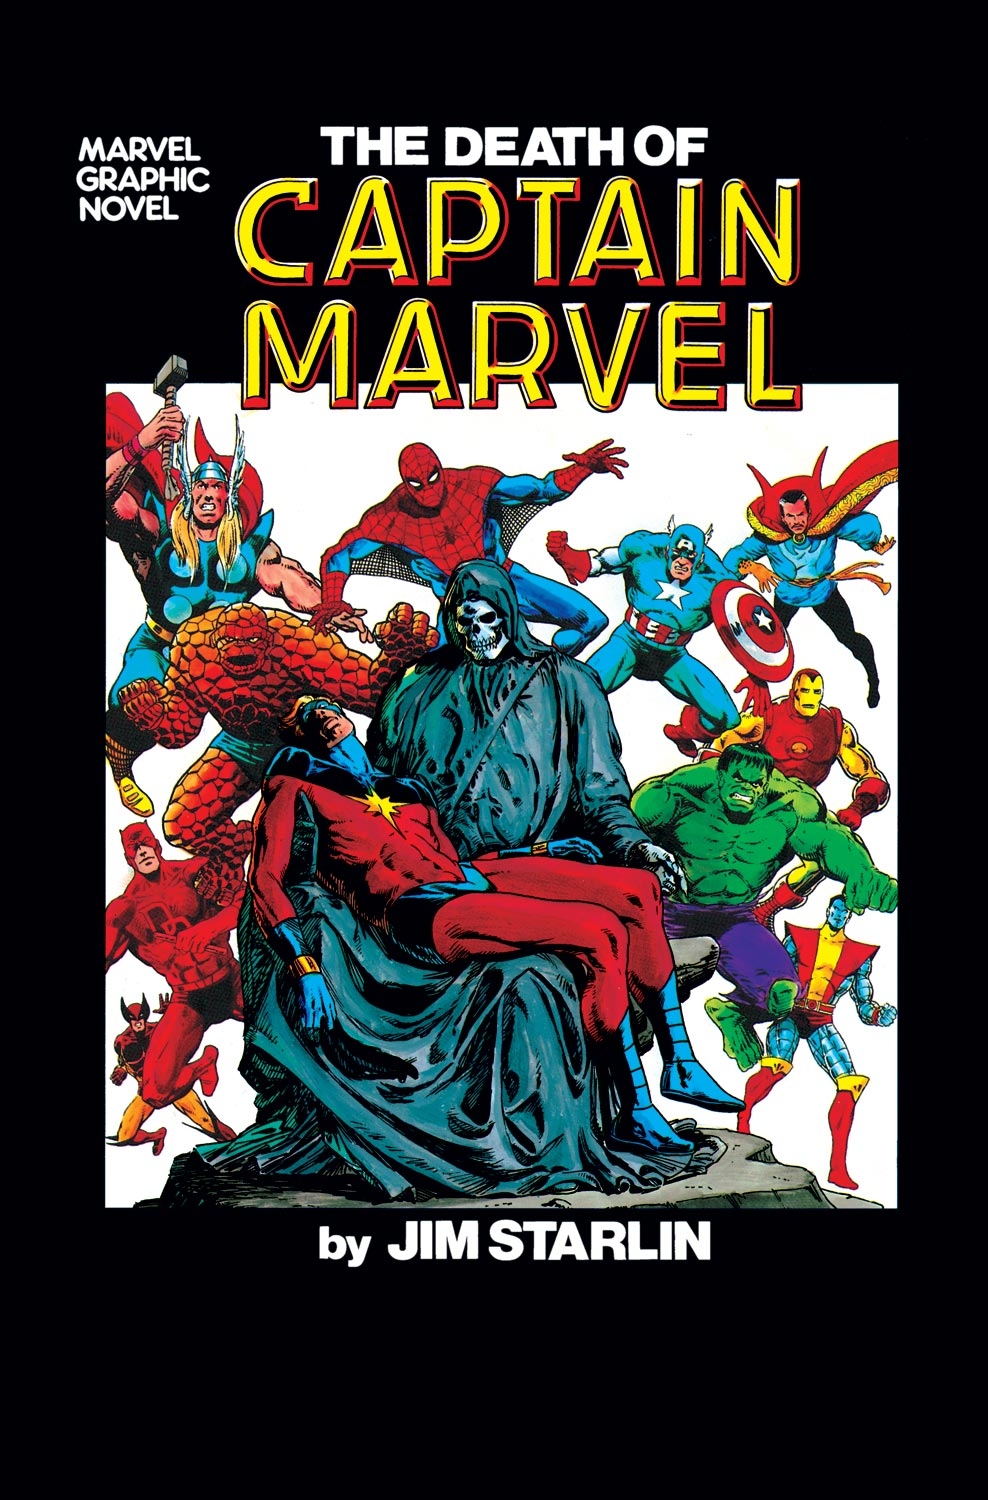 The Death of Captain Marvel (1982)